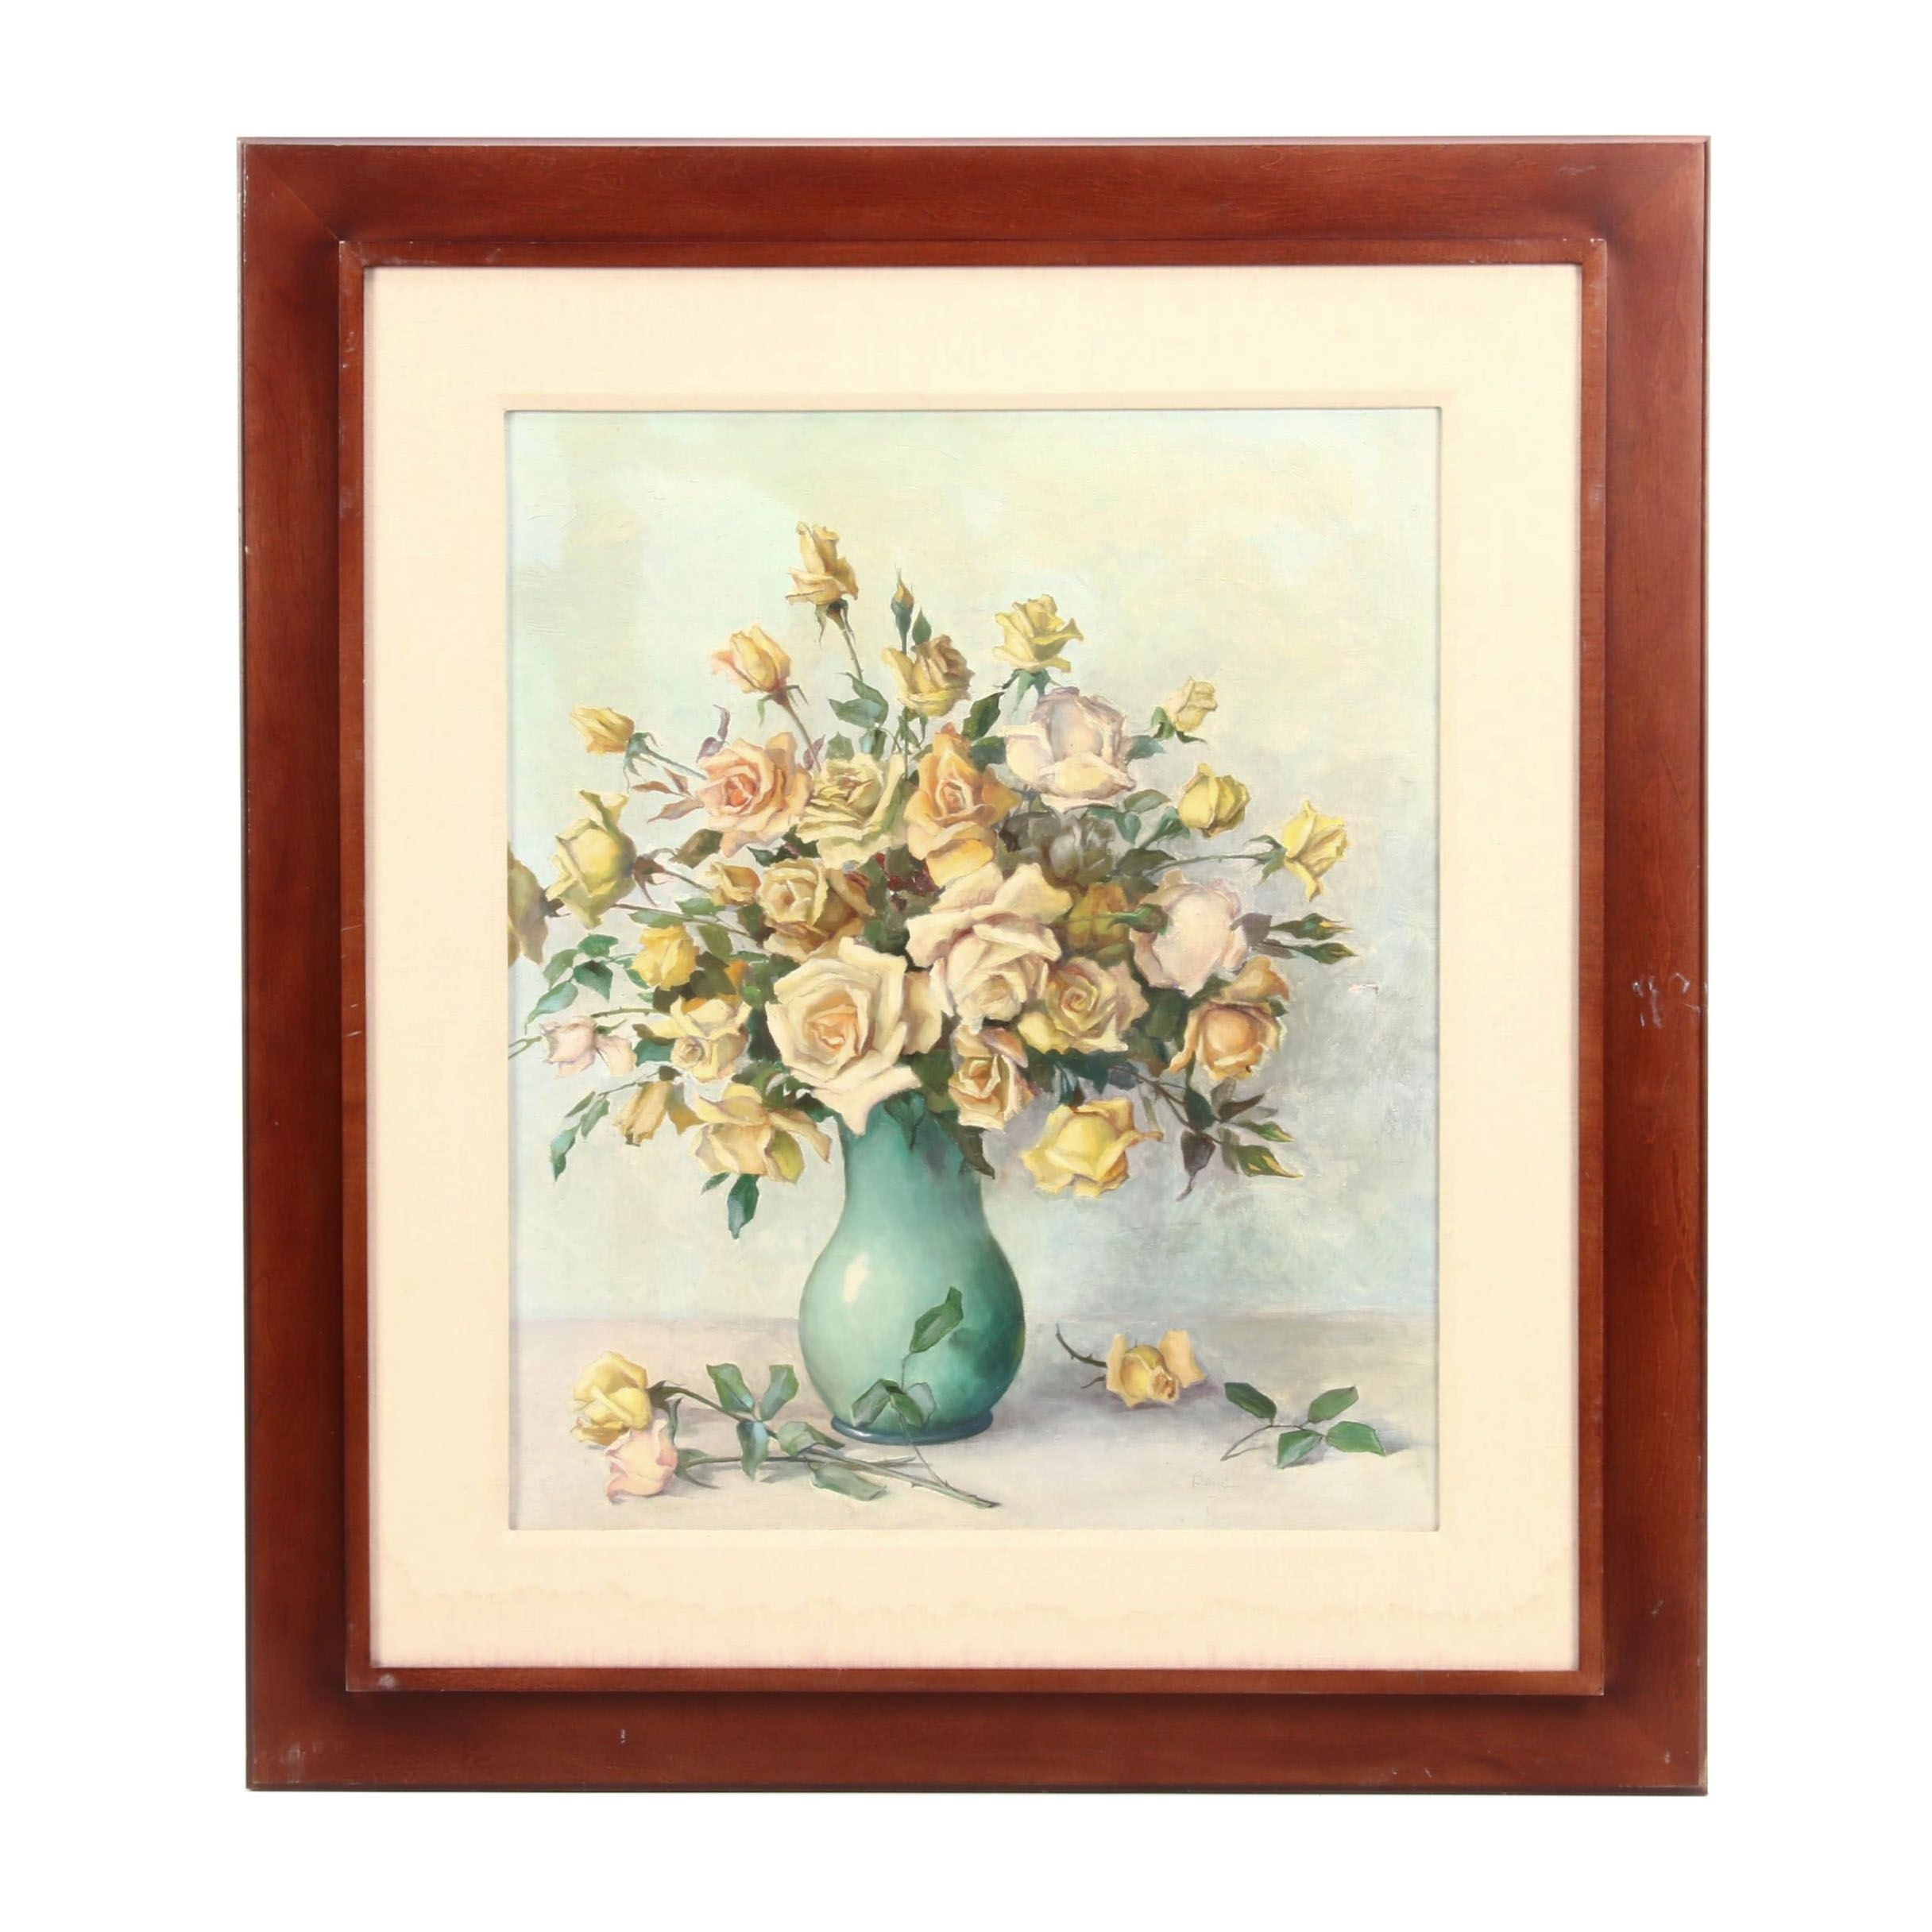 20th Century Oil Painting of Roses in Vase